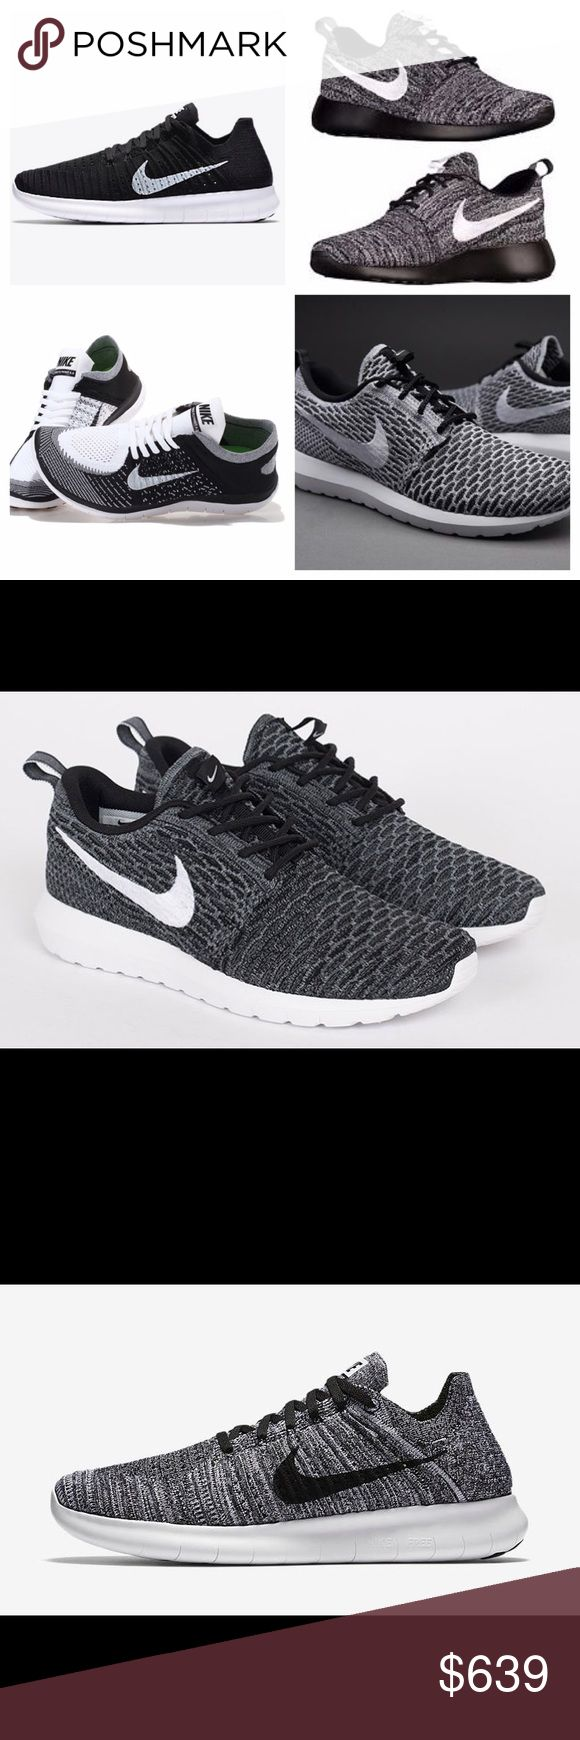 Nike Flyknit ISO's I'm currently looking for any of these Nike's in size 7 for the Roshe Flyknits and size 7.5 for the Oreo Flyknits and the RN Flyknits! Any help finding any of these would be appreciated! Nike Shoes Athletic Shoes